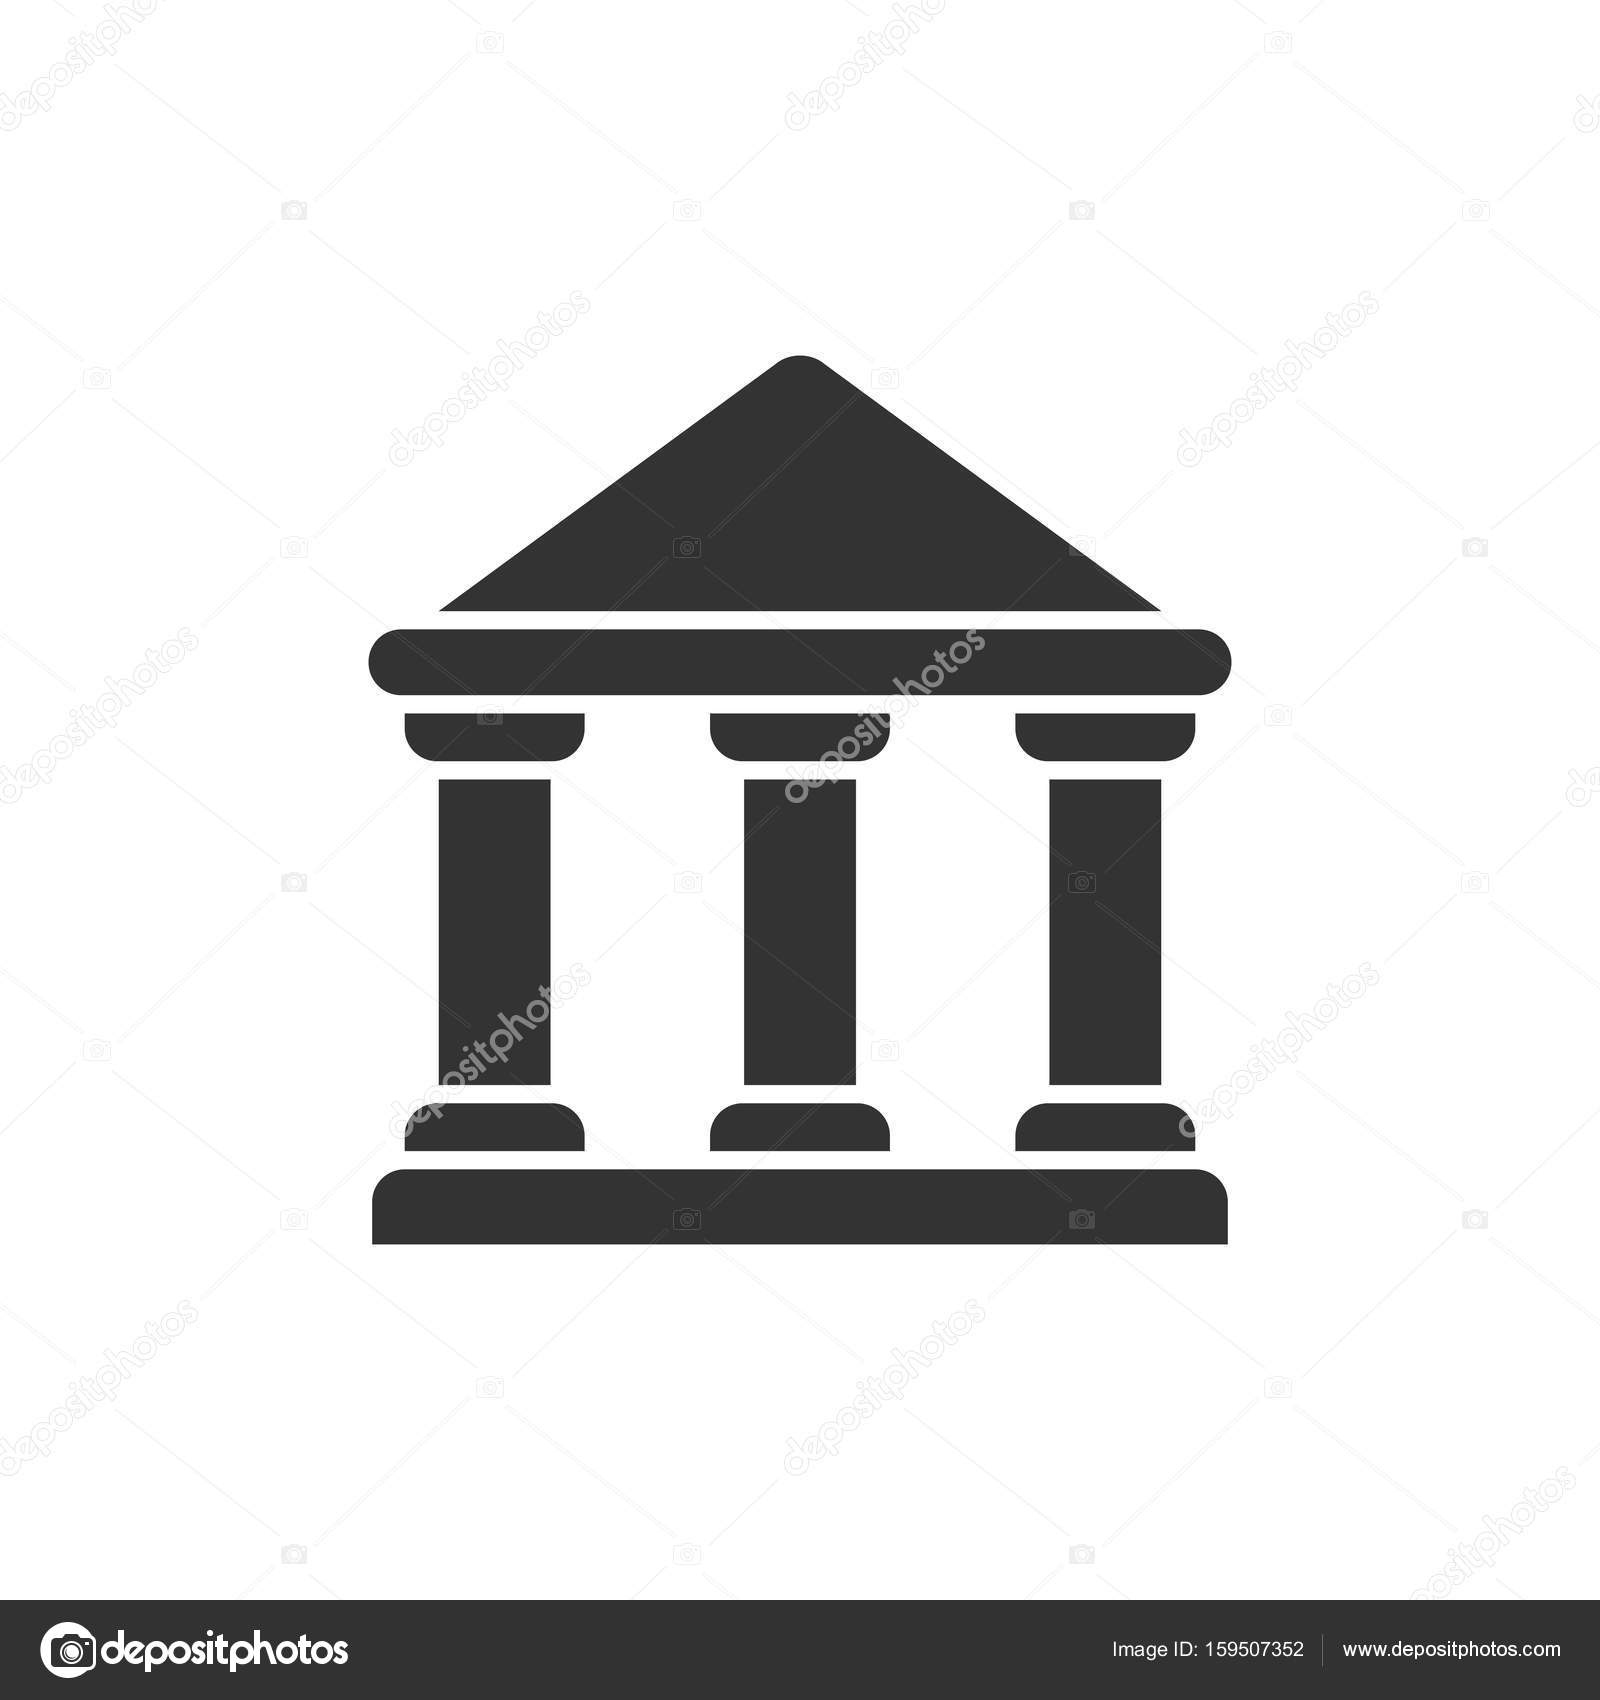 Government building symbol stock vector pixelalex 159507352 government building symbol stock vector biocorpaavc